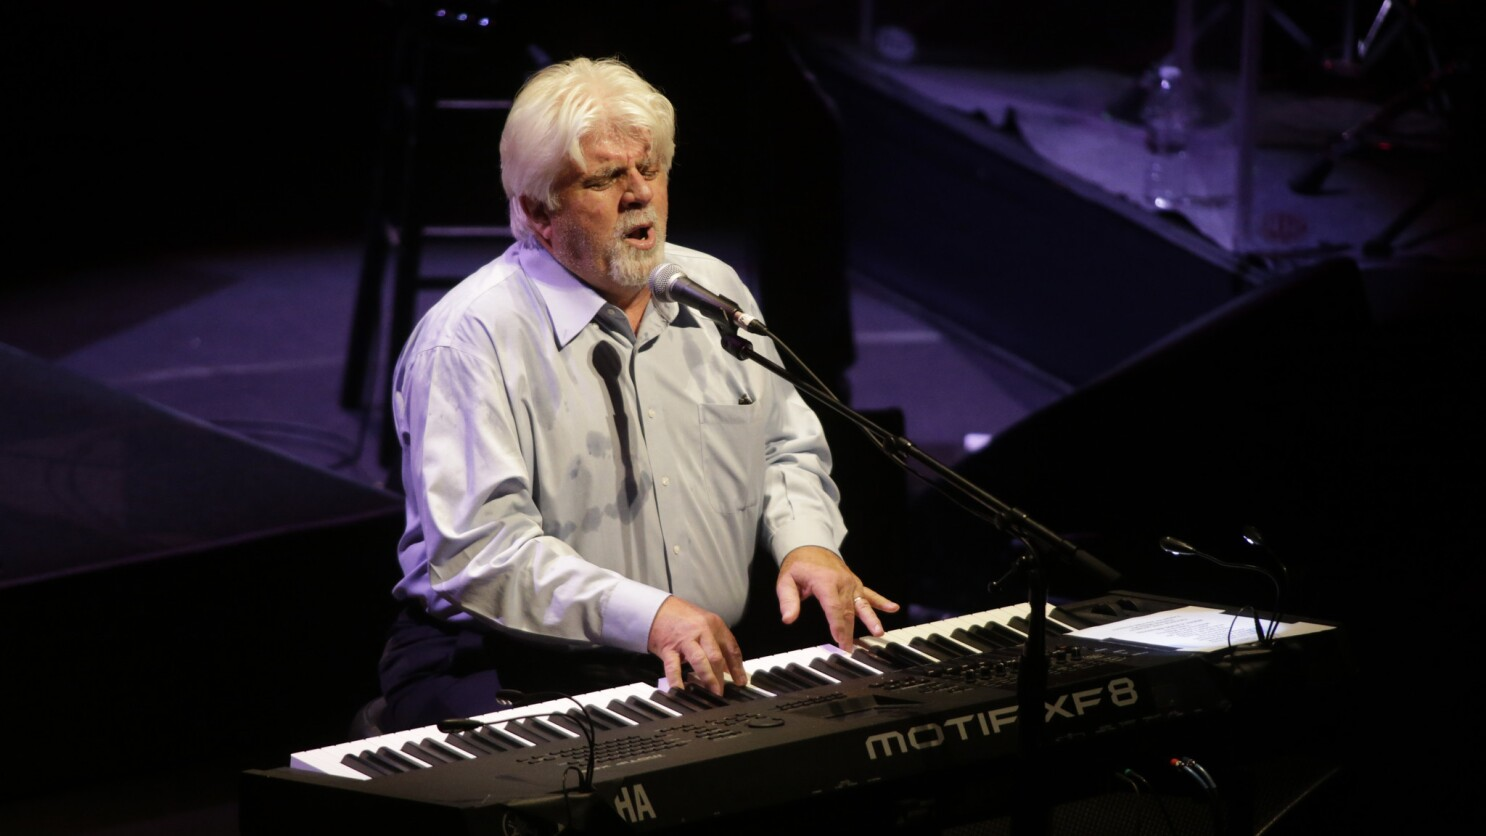 Michael McDonald still taking it to the streets, more cool than ever, thanks to Thundercat and Grizzly Bear